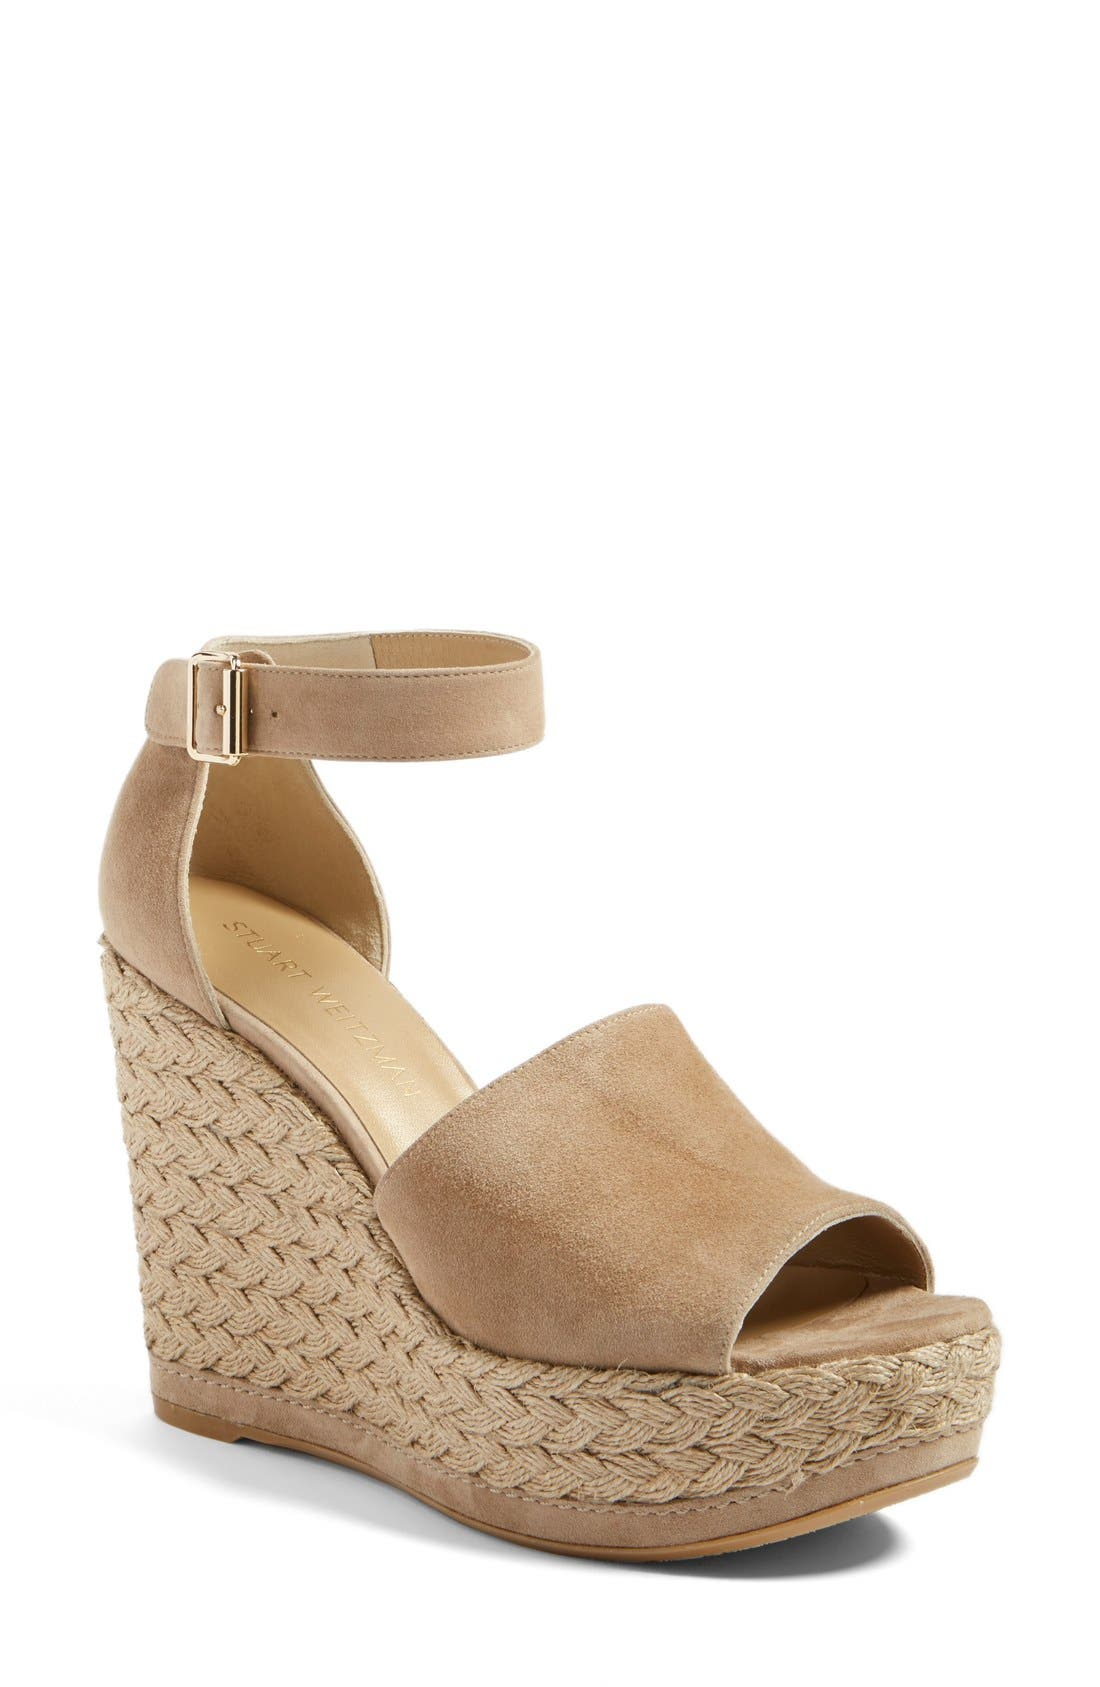 Sohojute Platform Wedge Sandal,                         Main,                         color, Mojave Suede